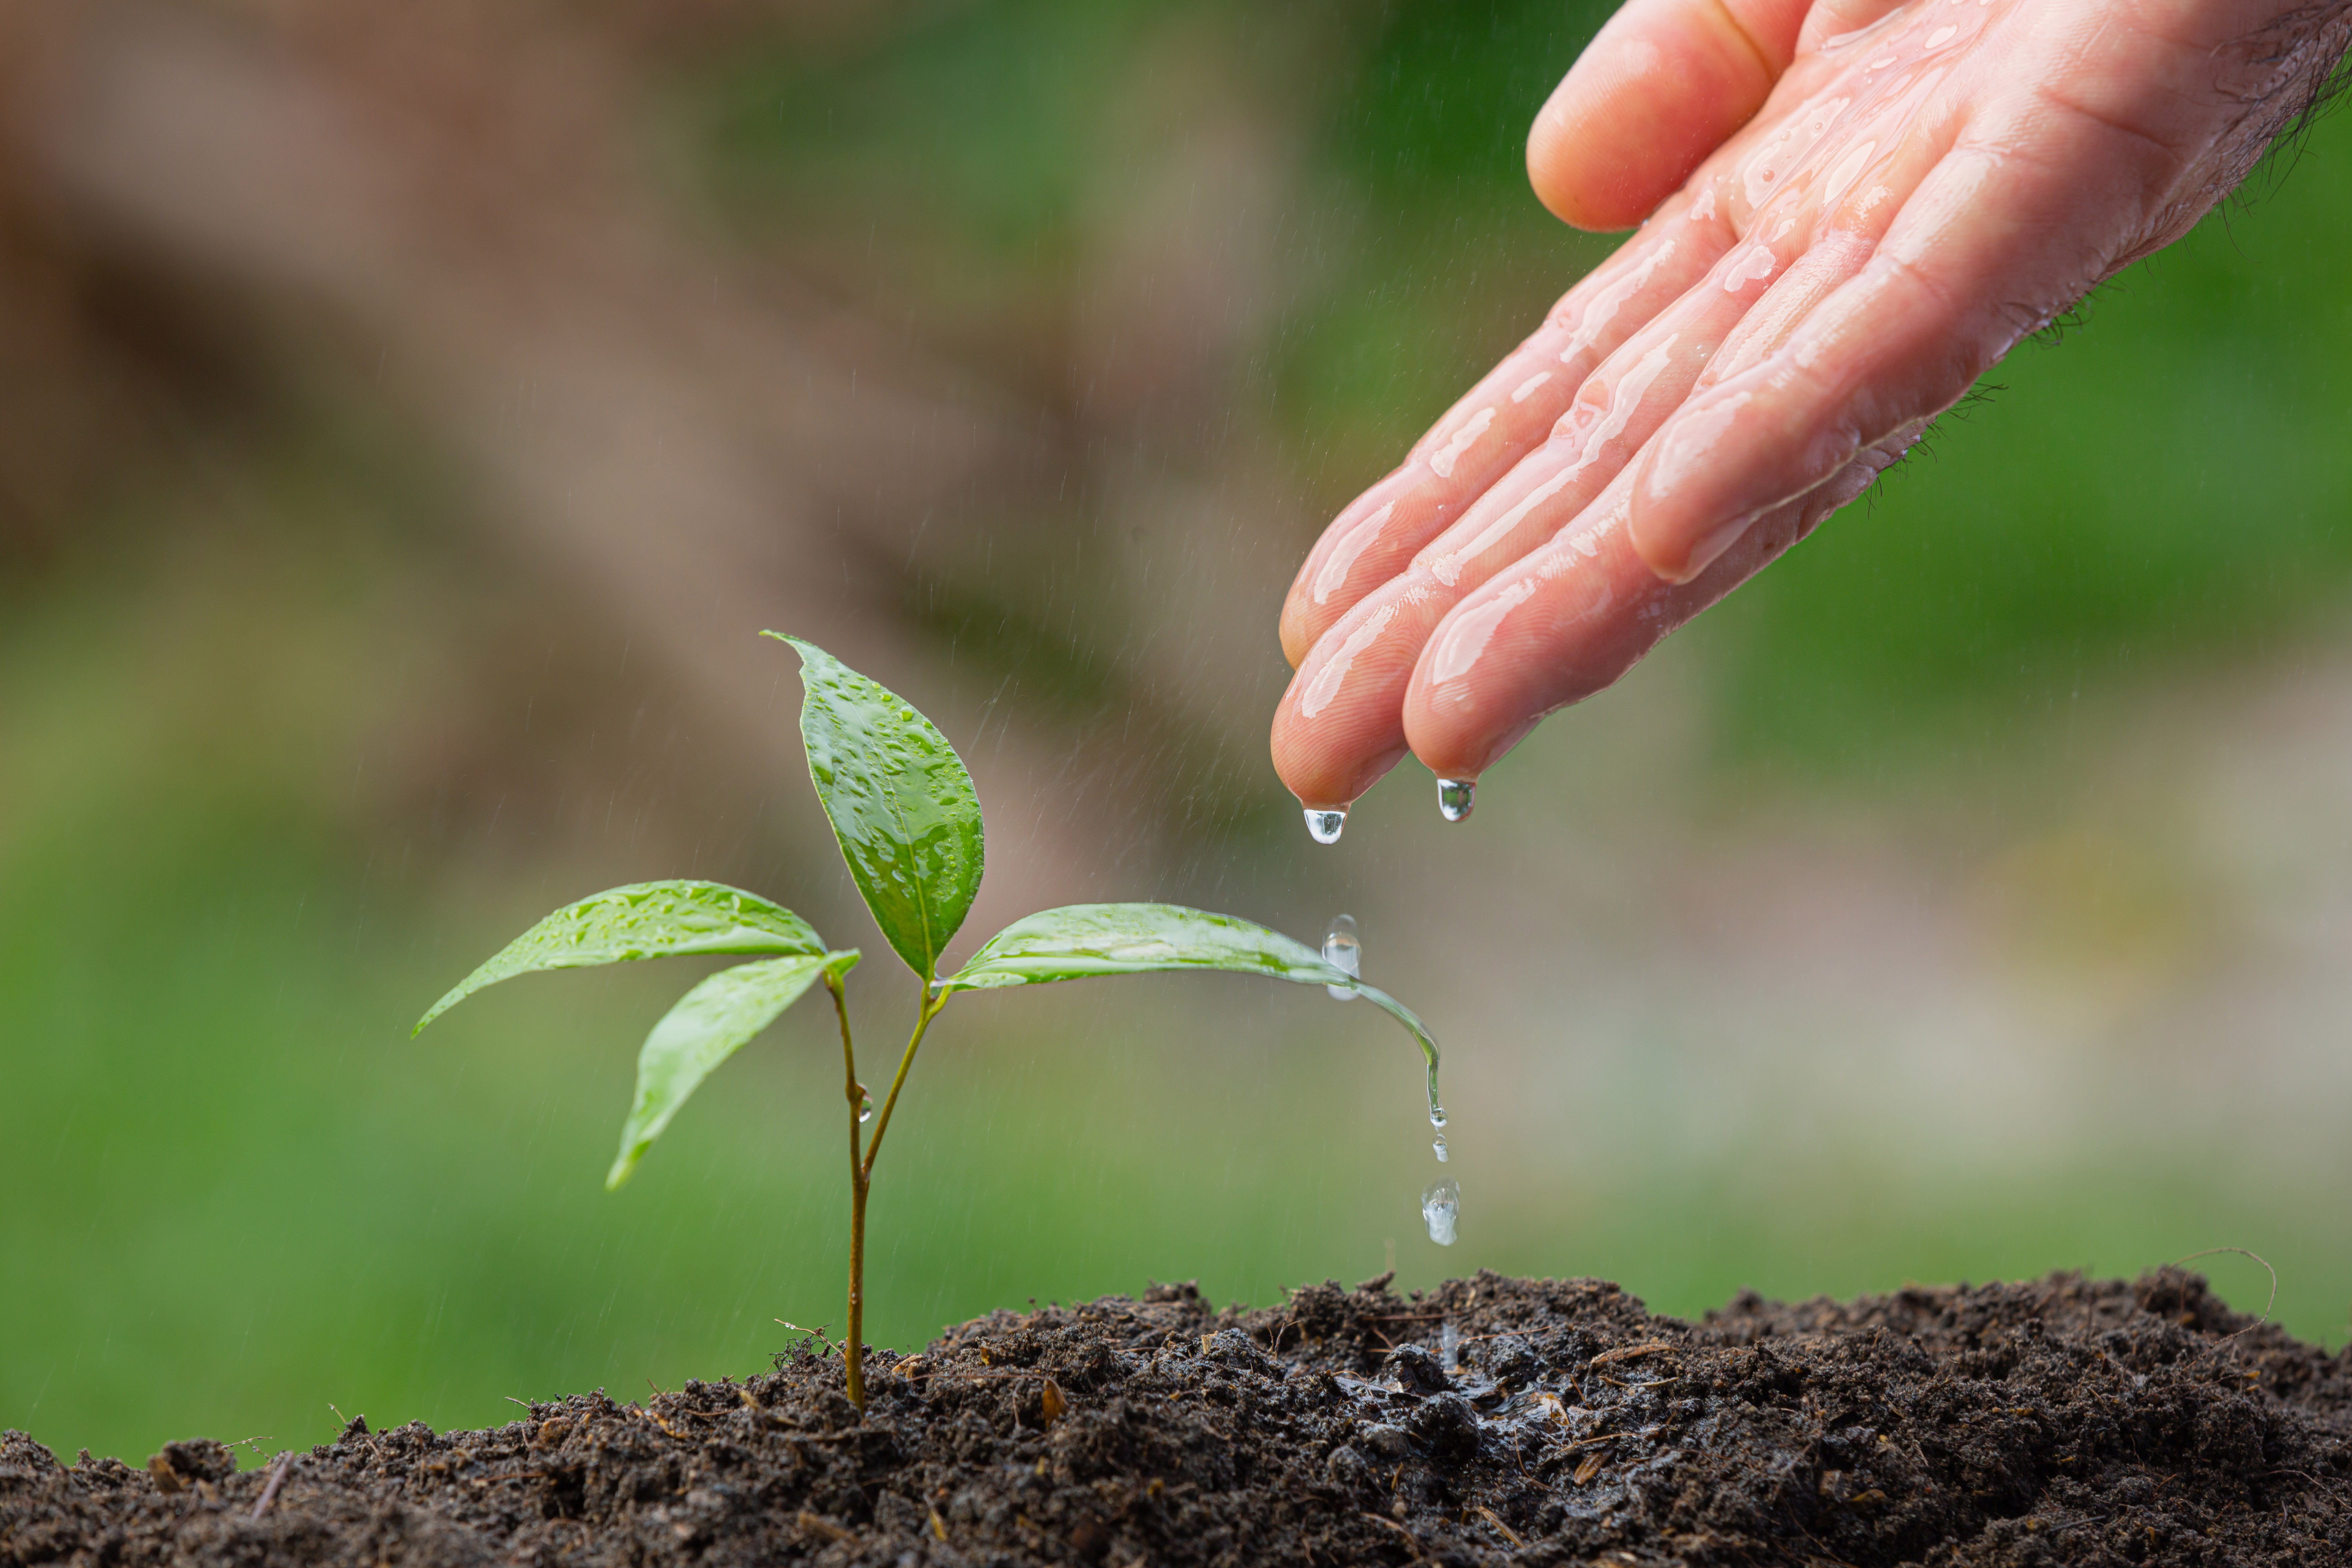 close-up-picture-hand-watering-sapling-plant.jpg